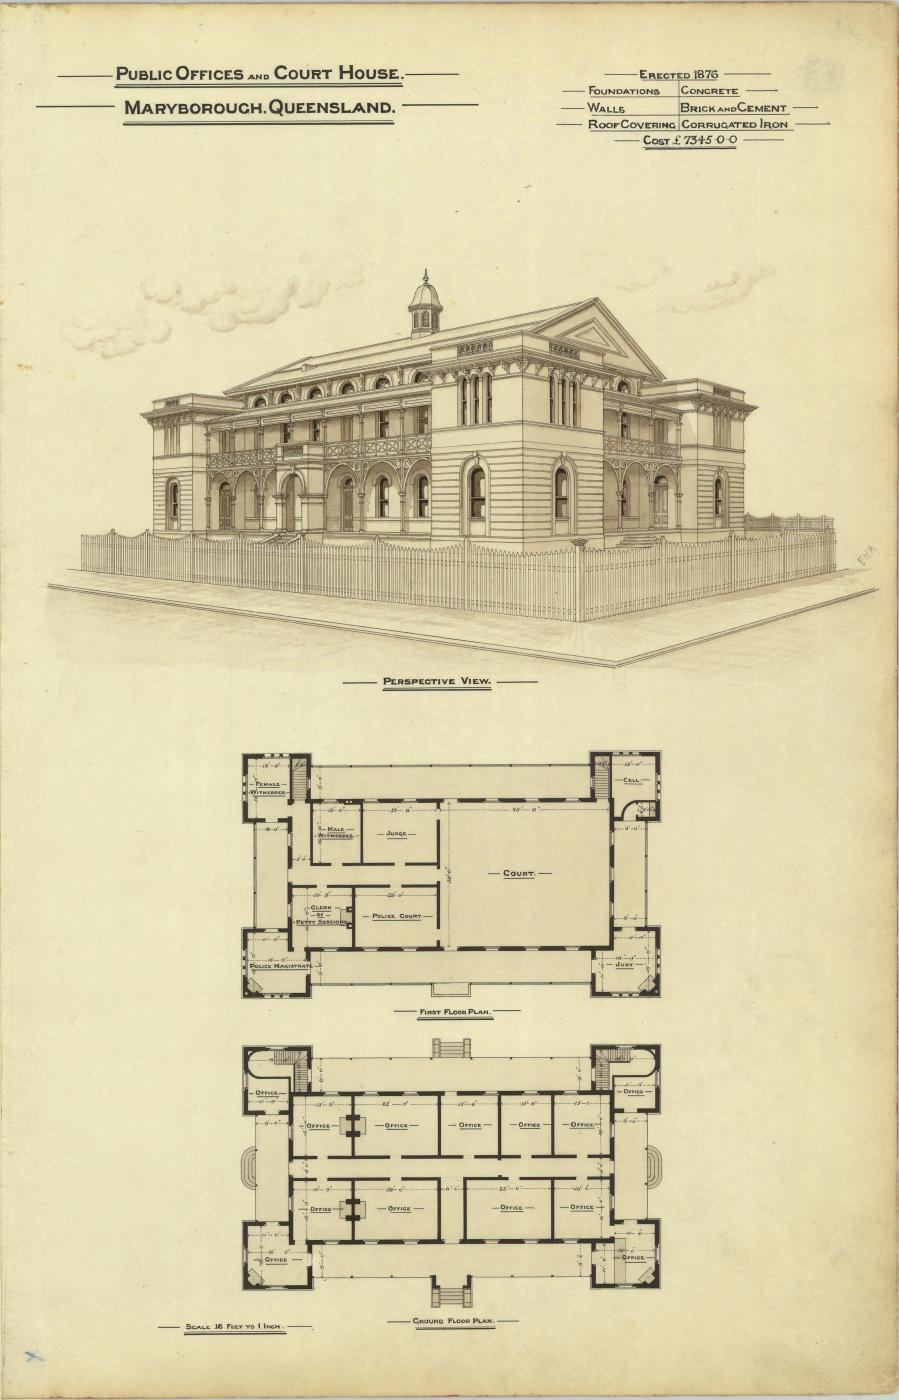 Plans of the Public Offices, Maryborough